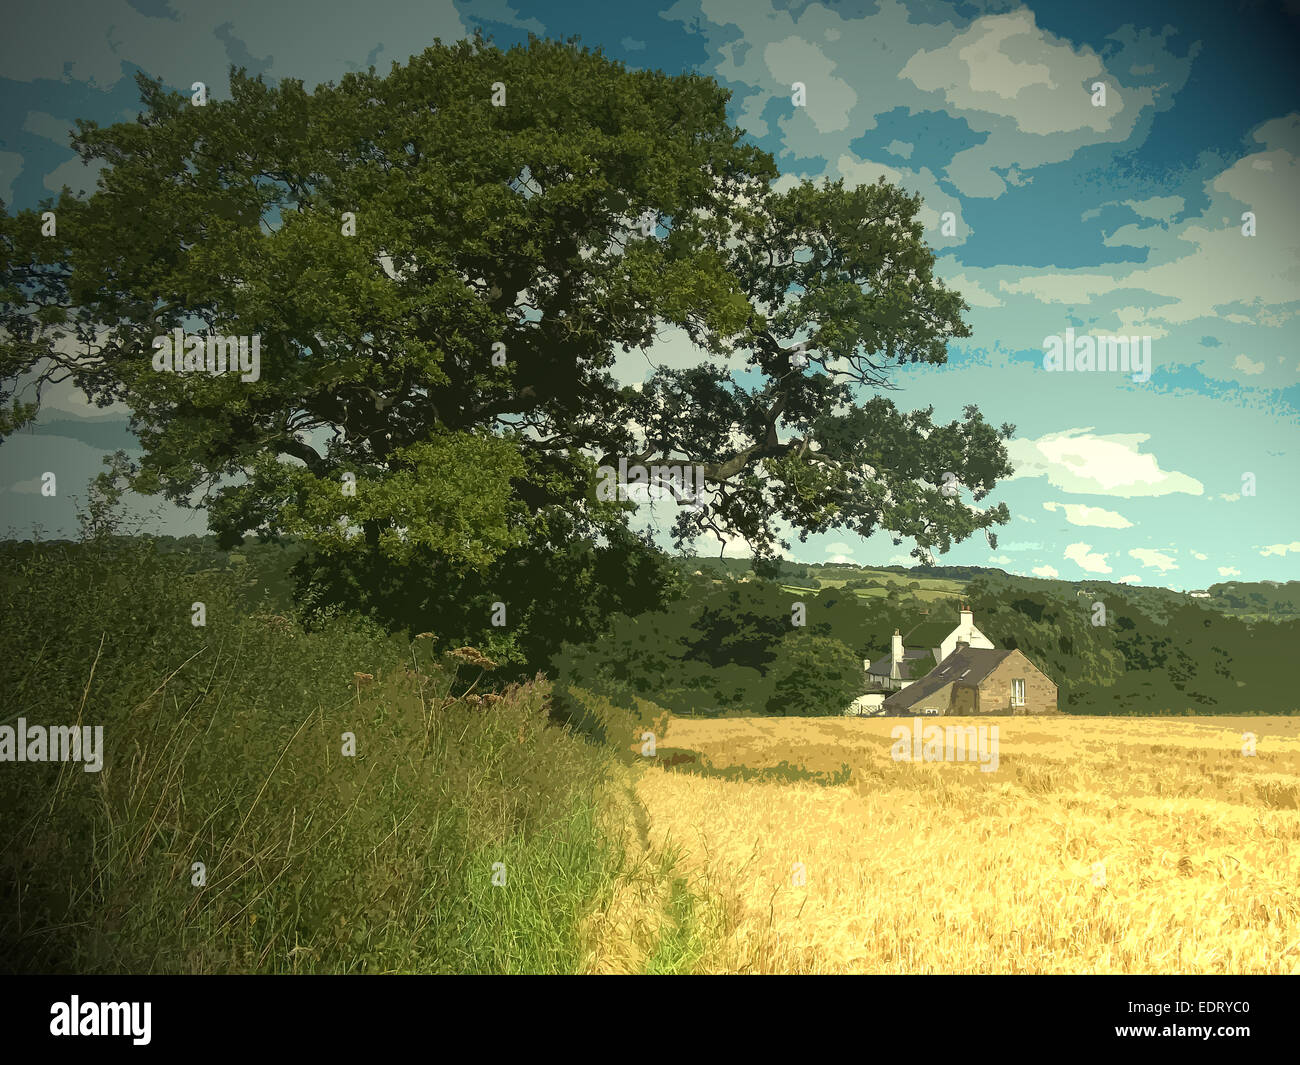 Rural Boozer in Windley, Nestled in the fold below is the Puss in Boots Public House, enveloped by crop fields and - Stock Image